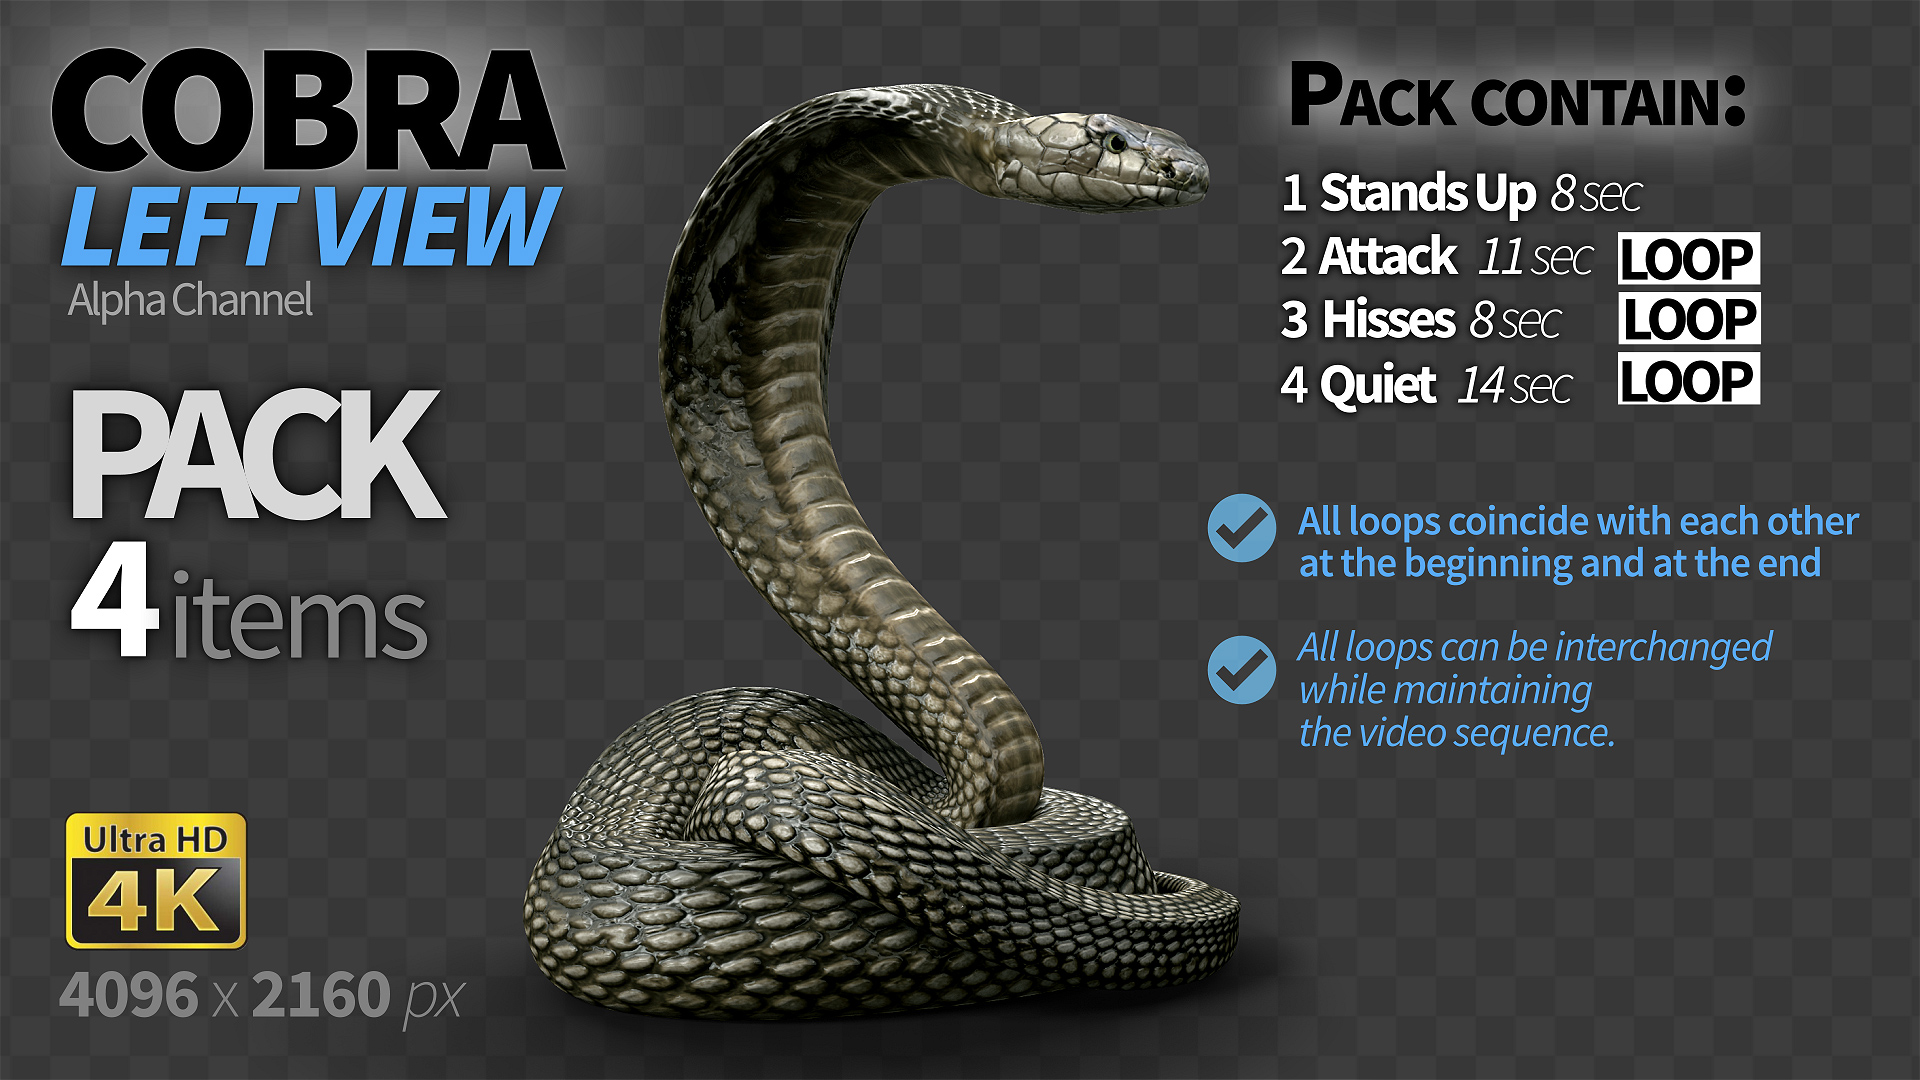 Cobra left view quiet by cglight | videohive.